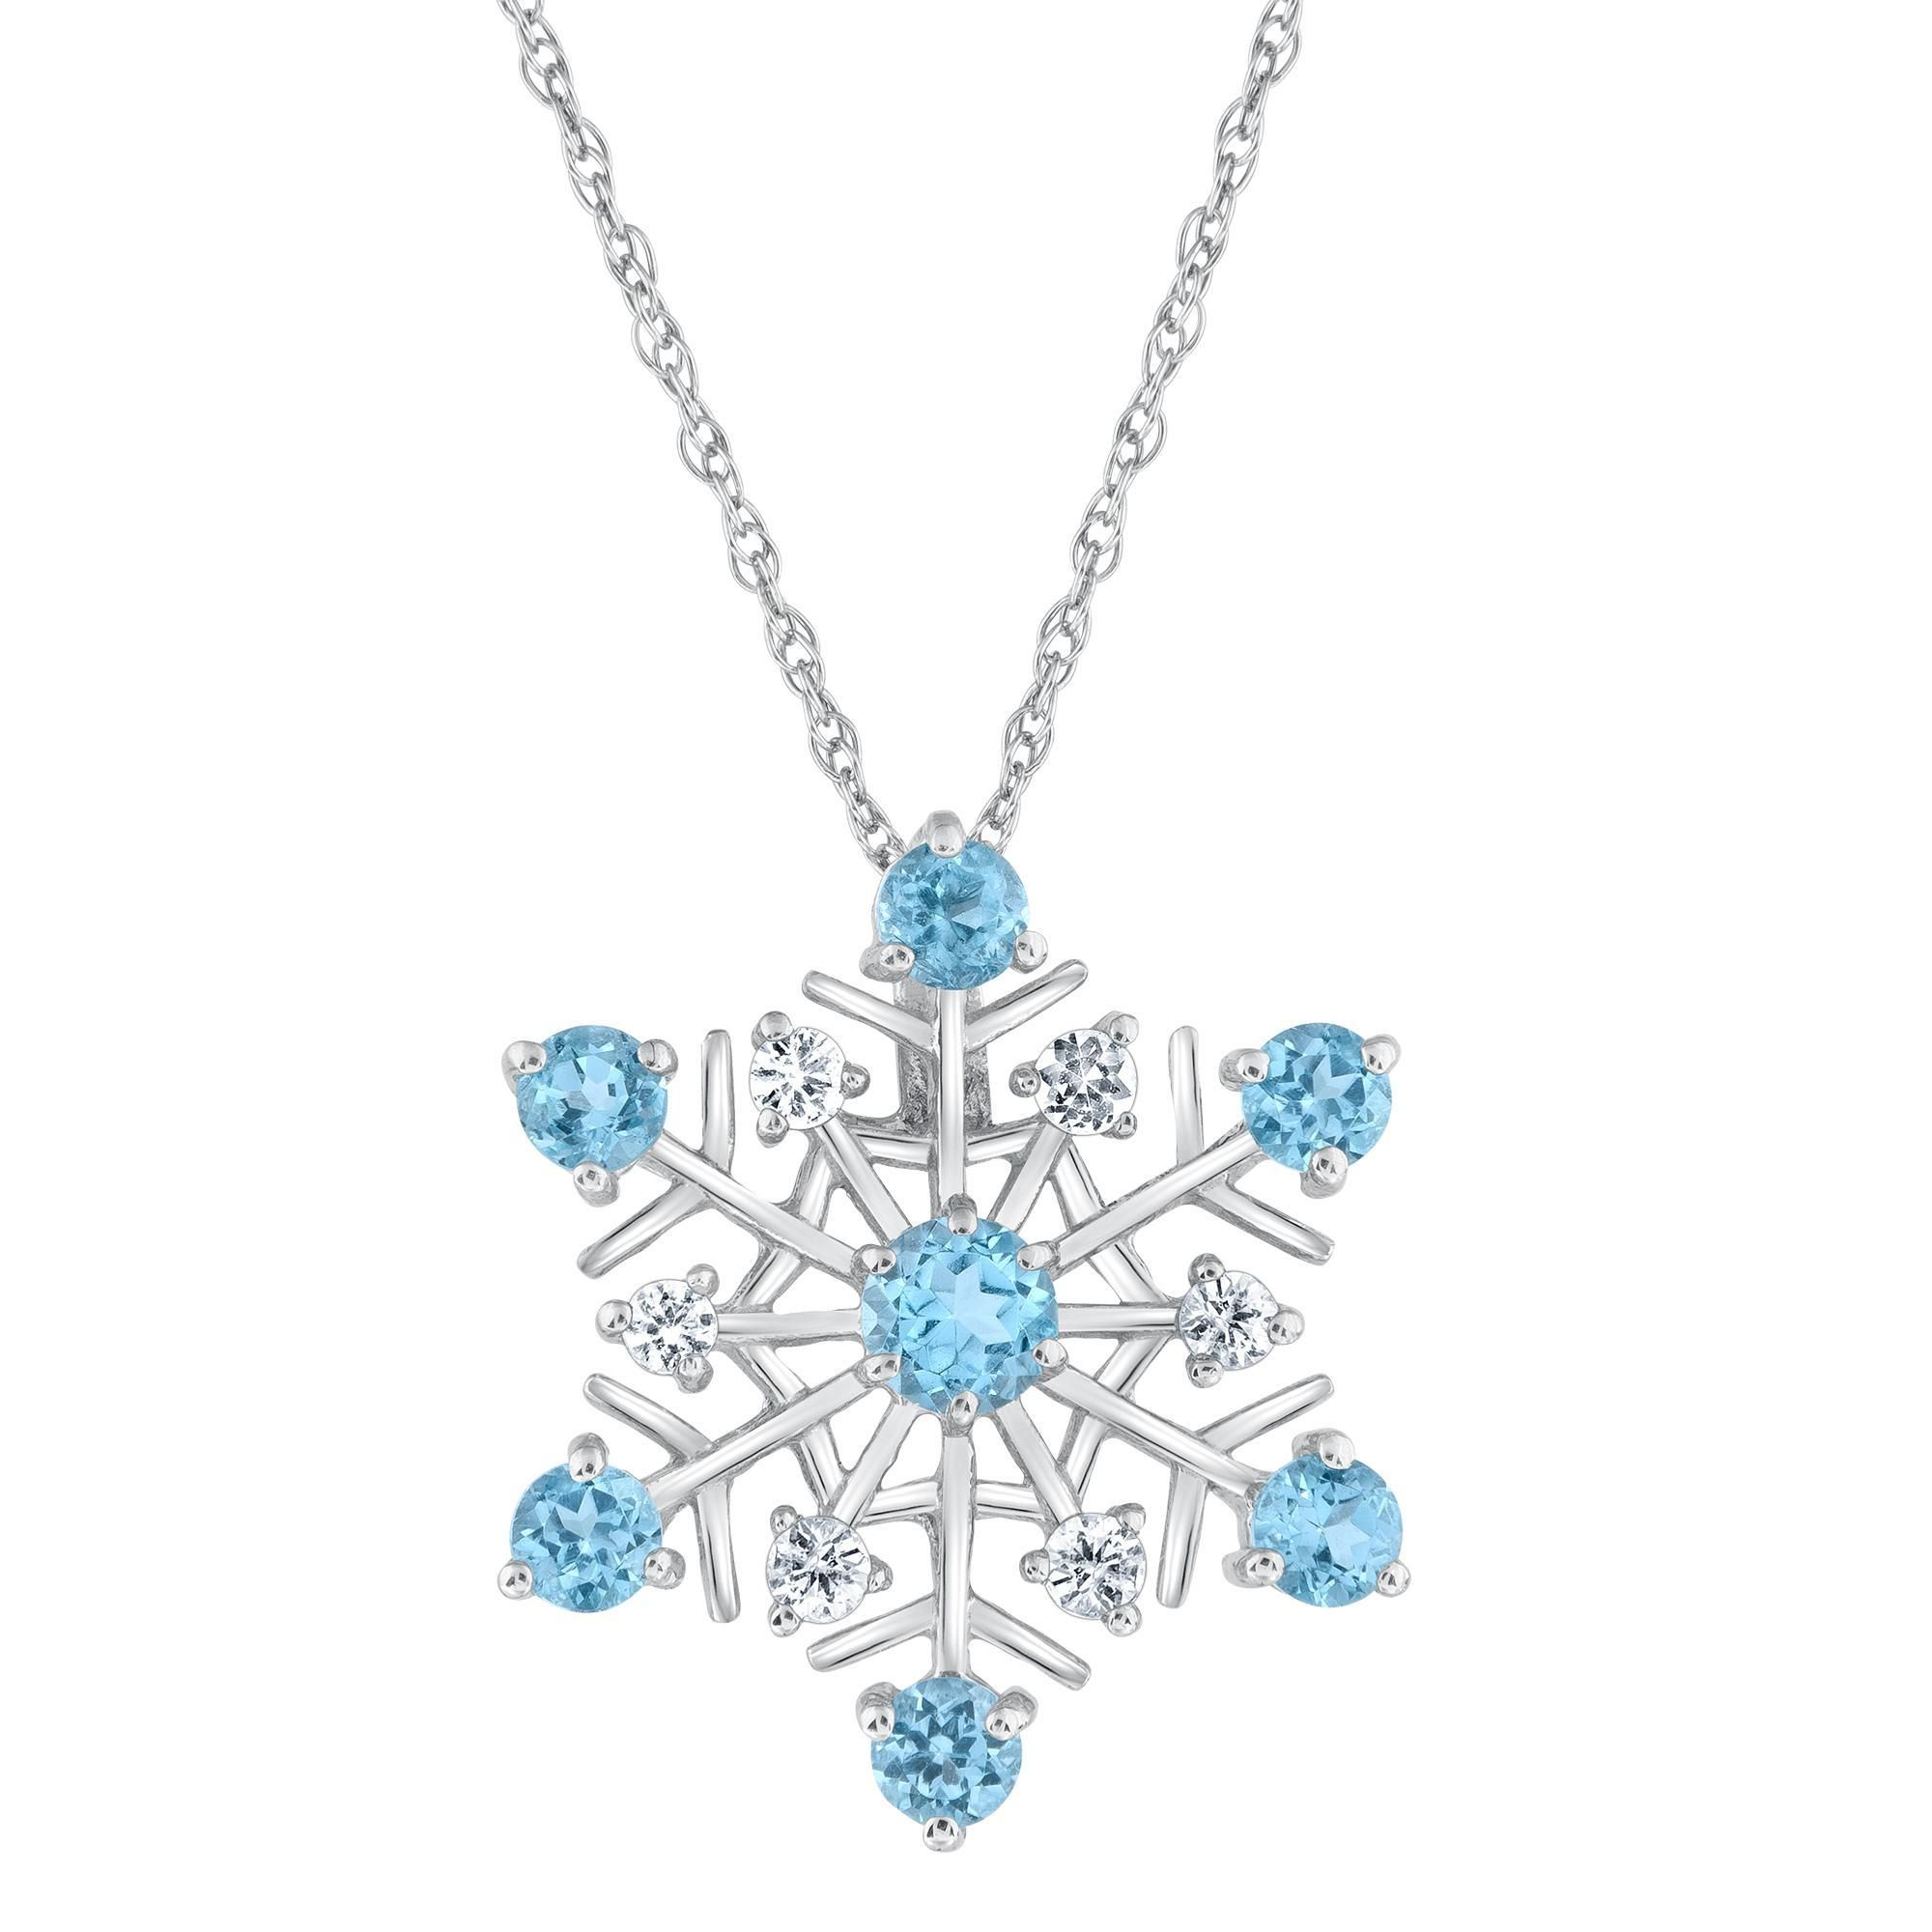 t pendant tw white w op diamond gold necklace product prd snowflake jsp carat wid sharpen hei